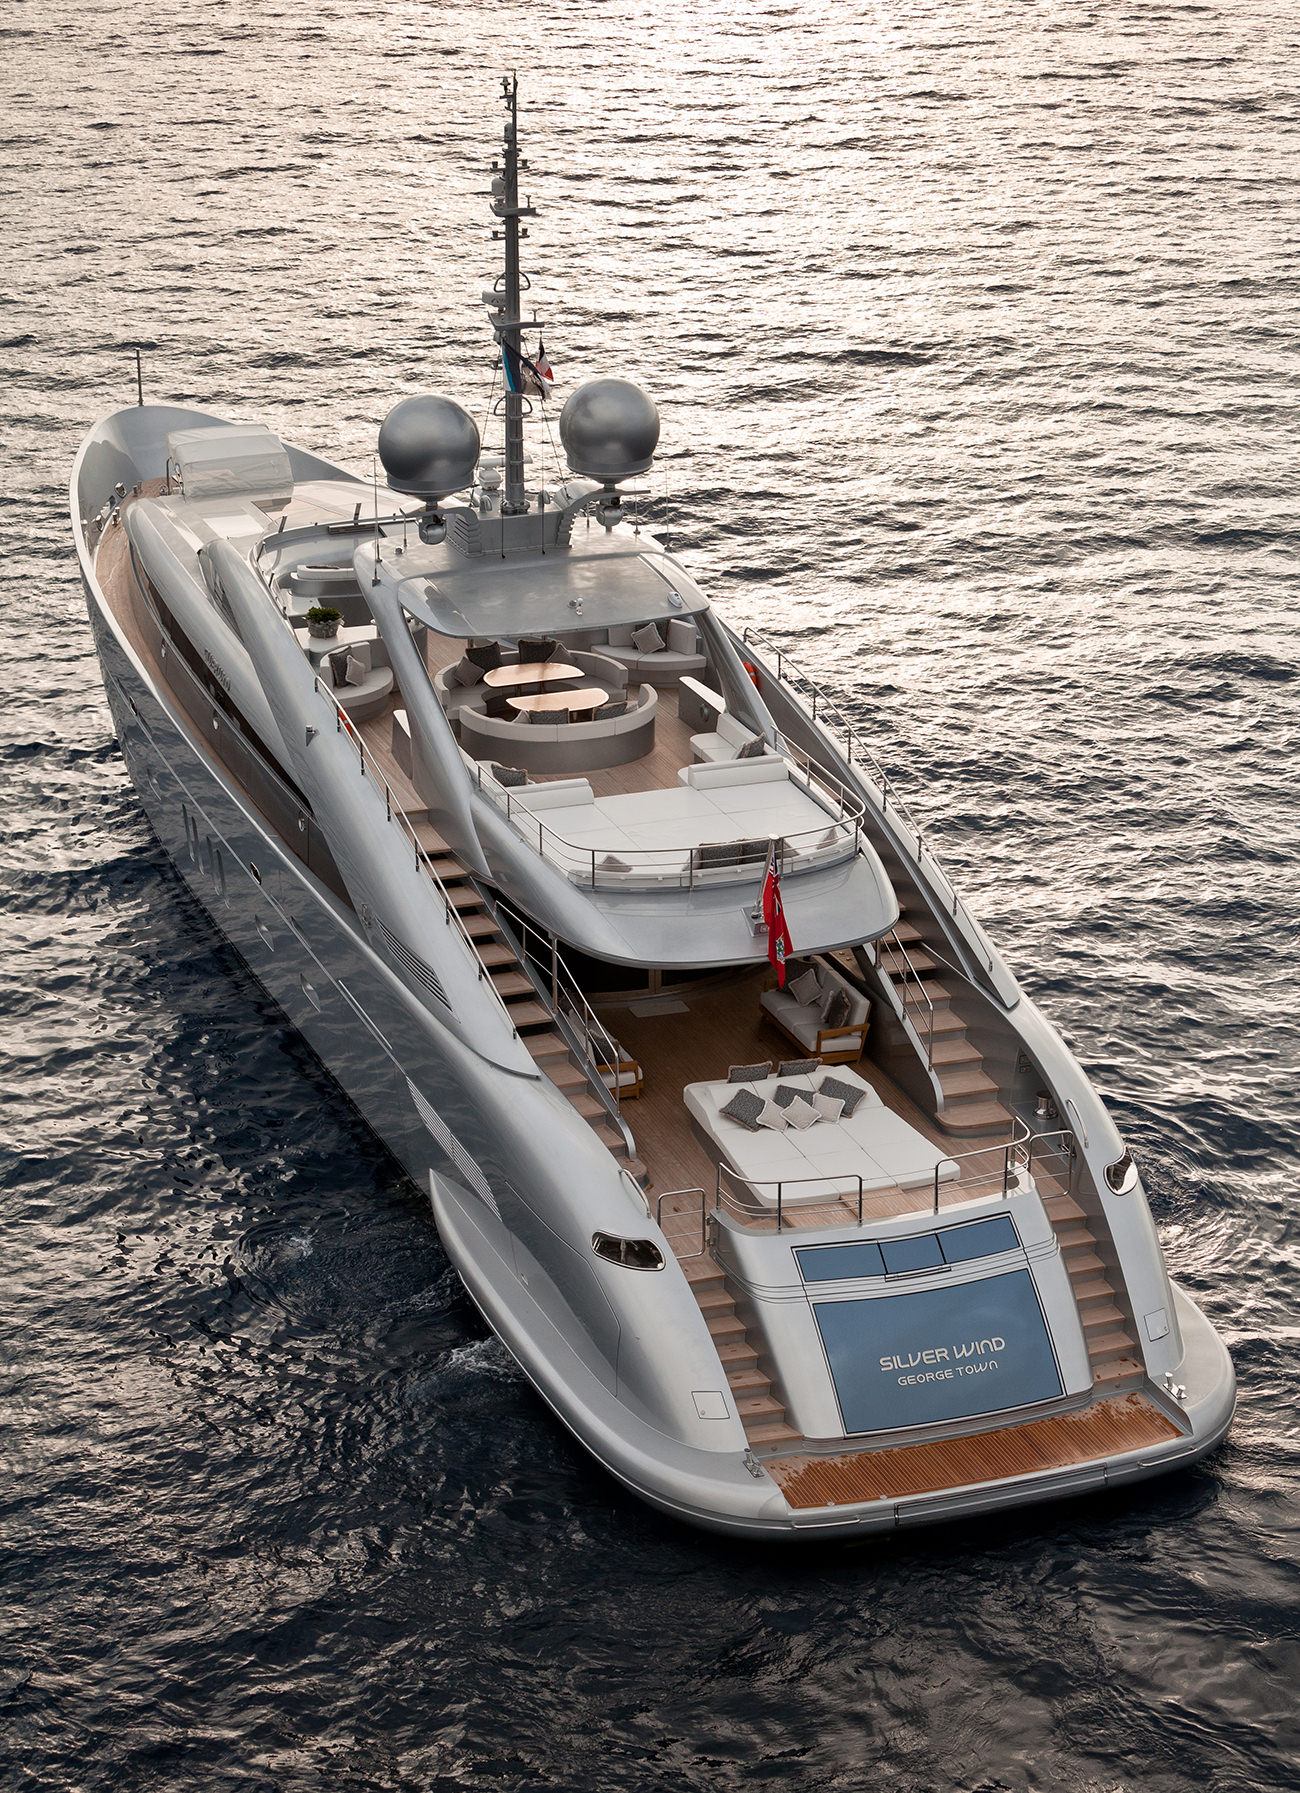 ISA-Yachts-Silver-Wind-5